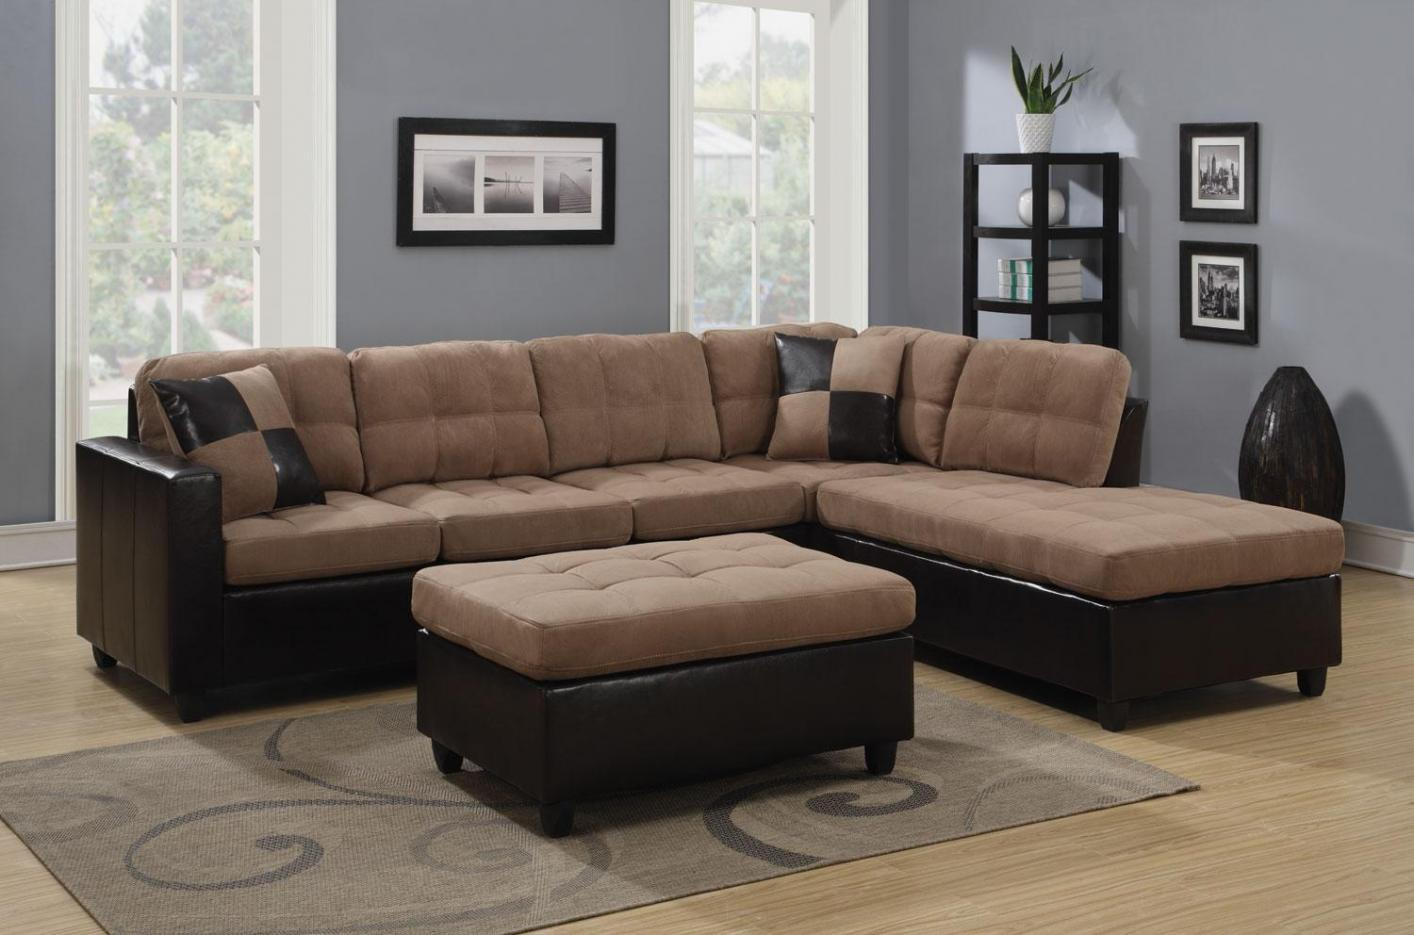 bel of polsterm leather unique sofa m aruba sectional neueste couches polstermobel couch fur f grobania tan mobel r